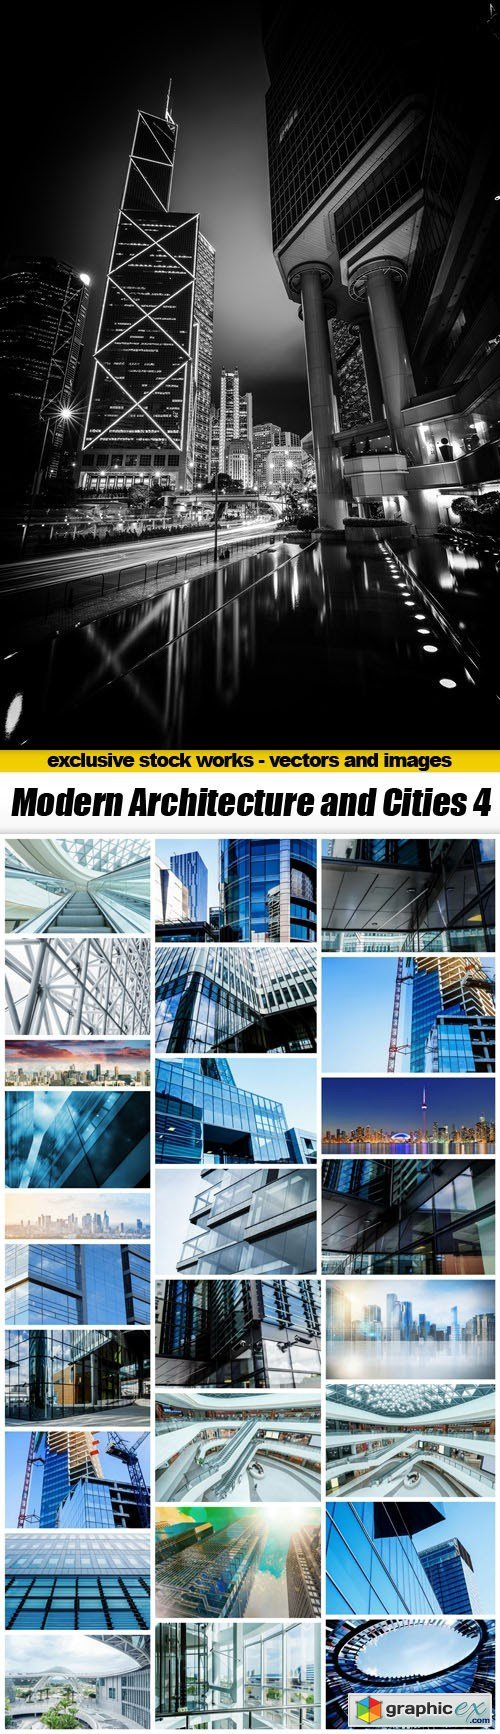 Modern Architecture and Cities 4 - 27xUHQ JPEG